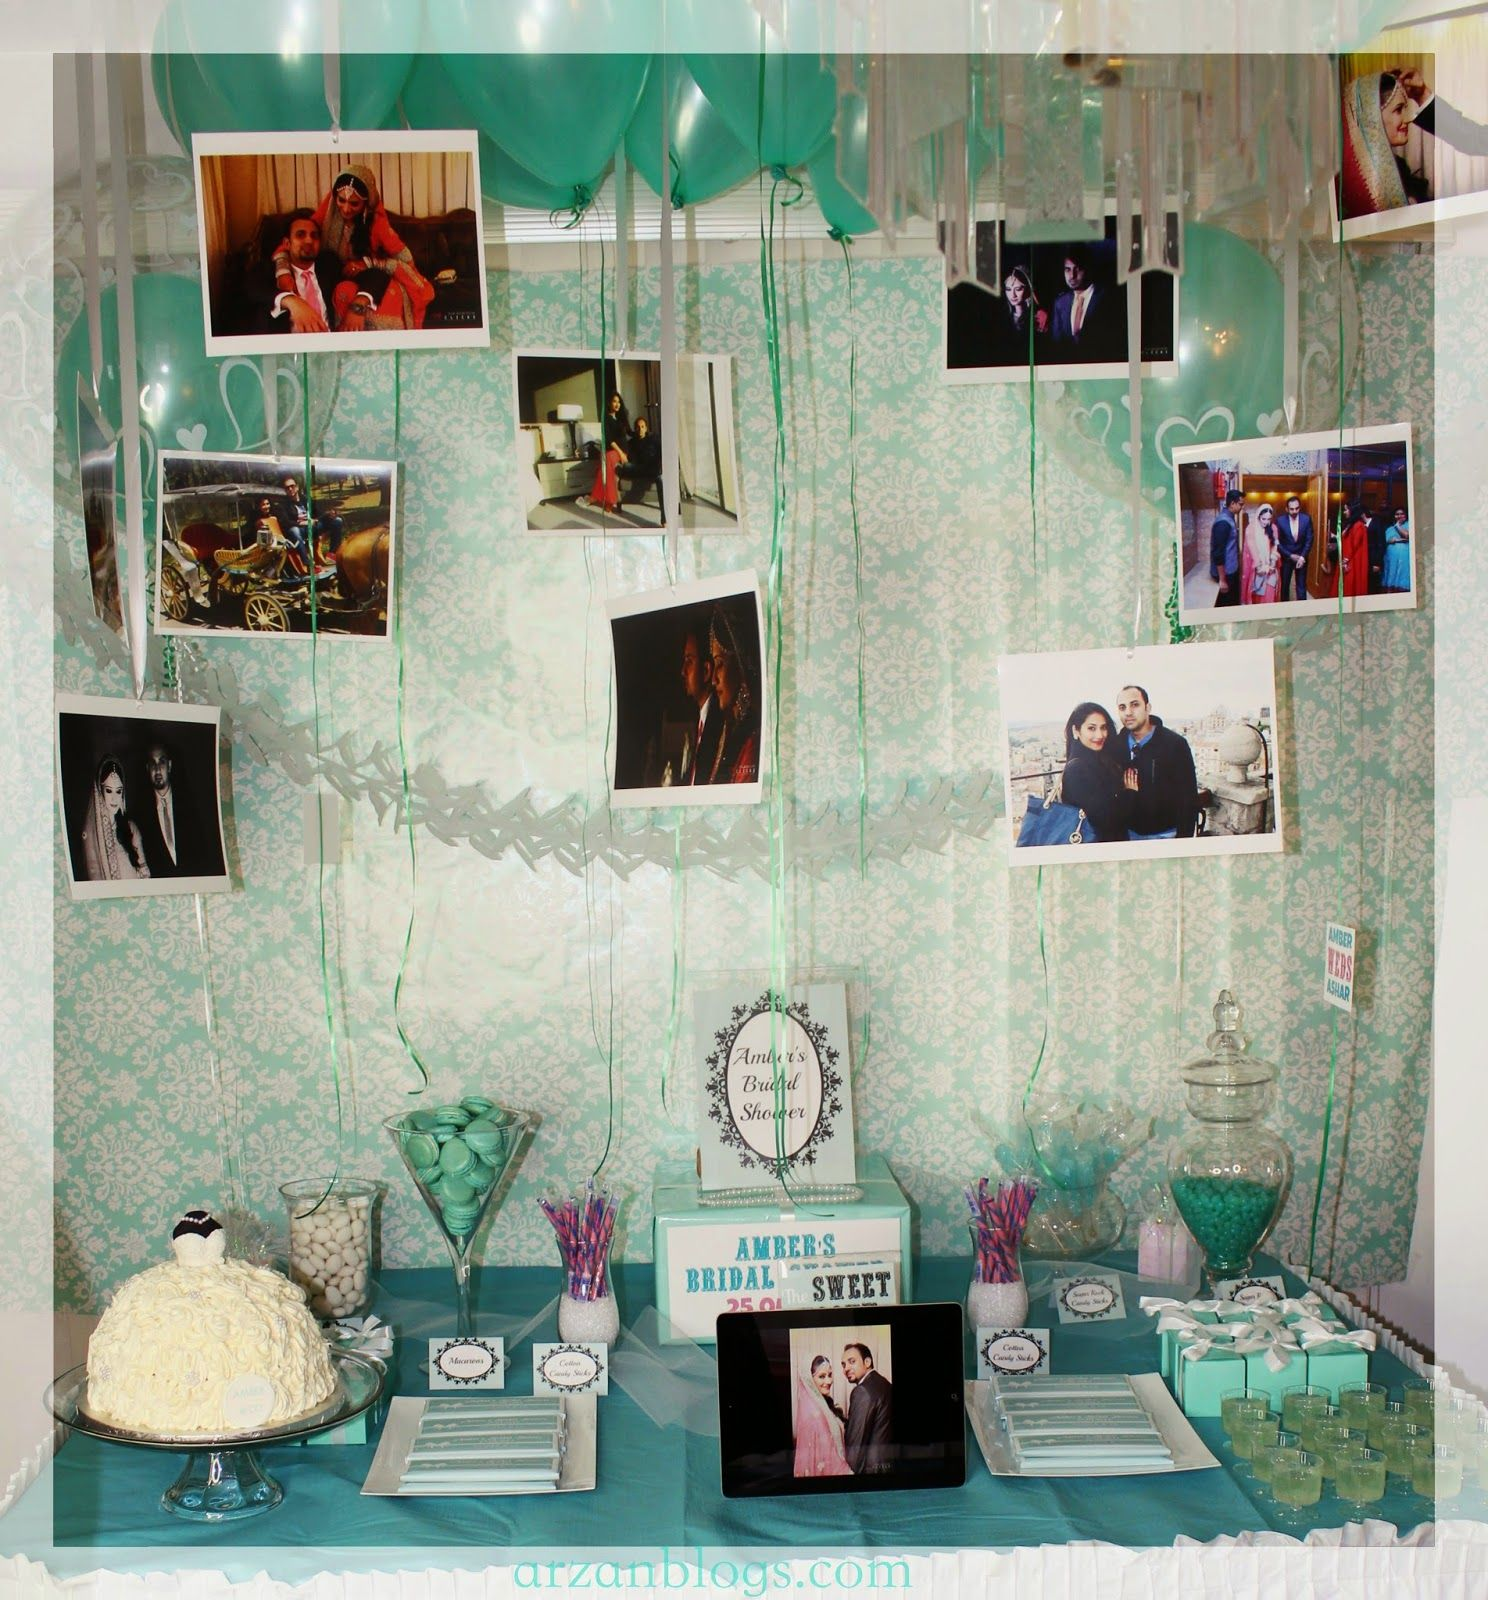 Amber's Tiffany & Co. themed Bridal Shower: http://arzanmontreal.blogspot.ca/2015/04/ambers-bridal-shower.html   Dessert Table/Candy Buffet: Dress cake, Macarons, Personalized Hershey's Chocolate Bars, Favor boxes, rock candy, jelly beans